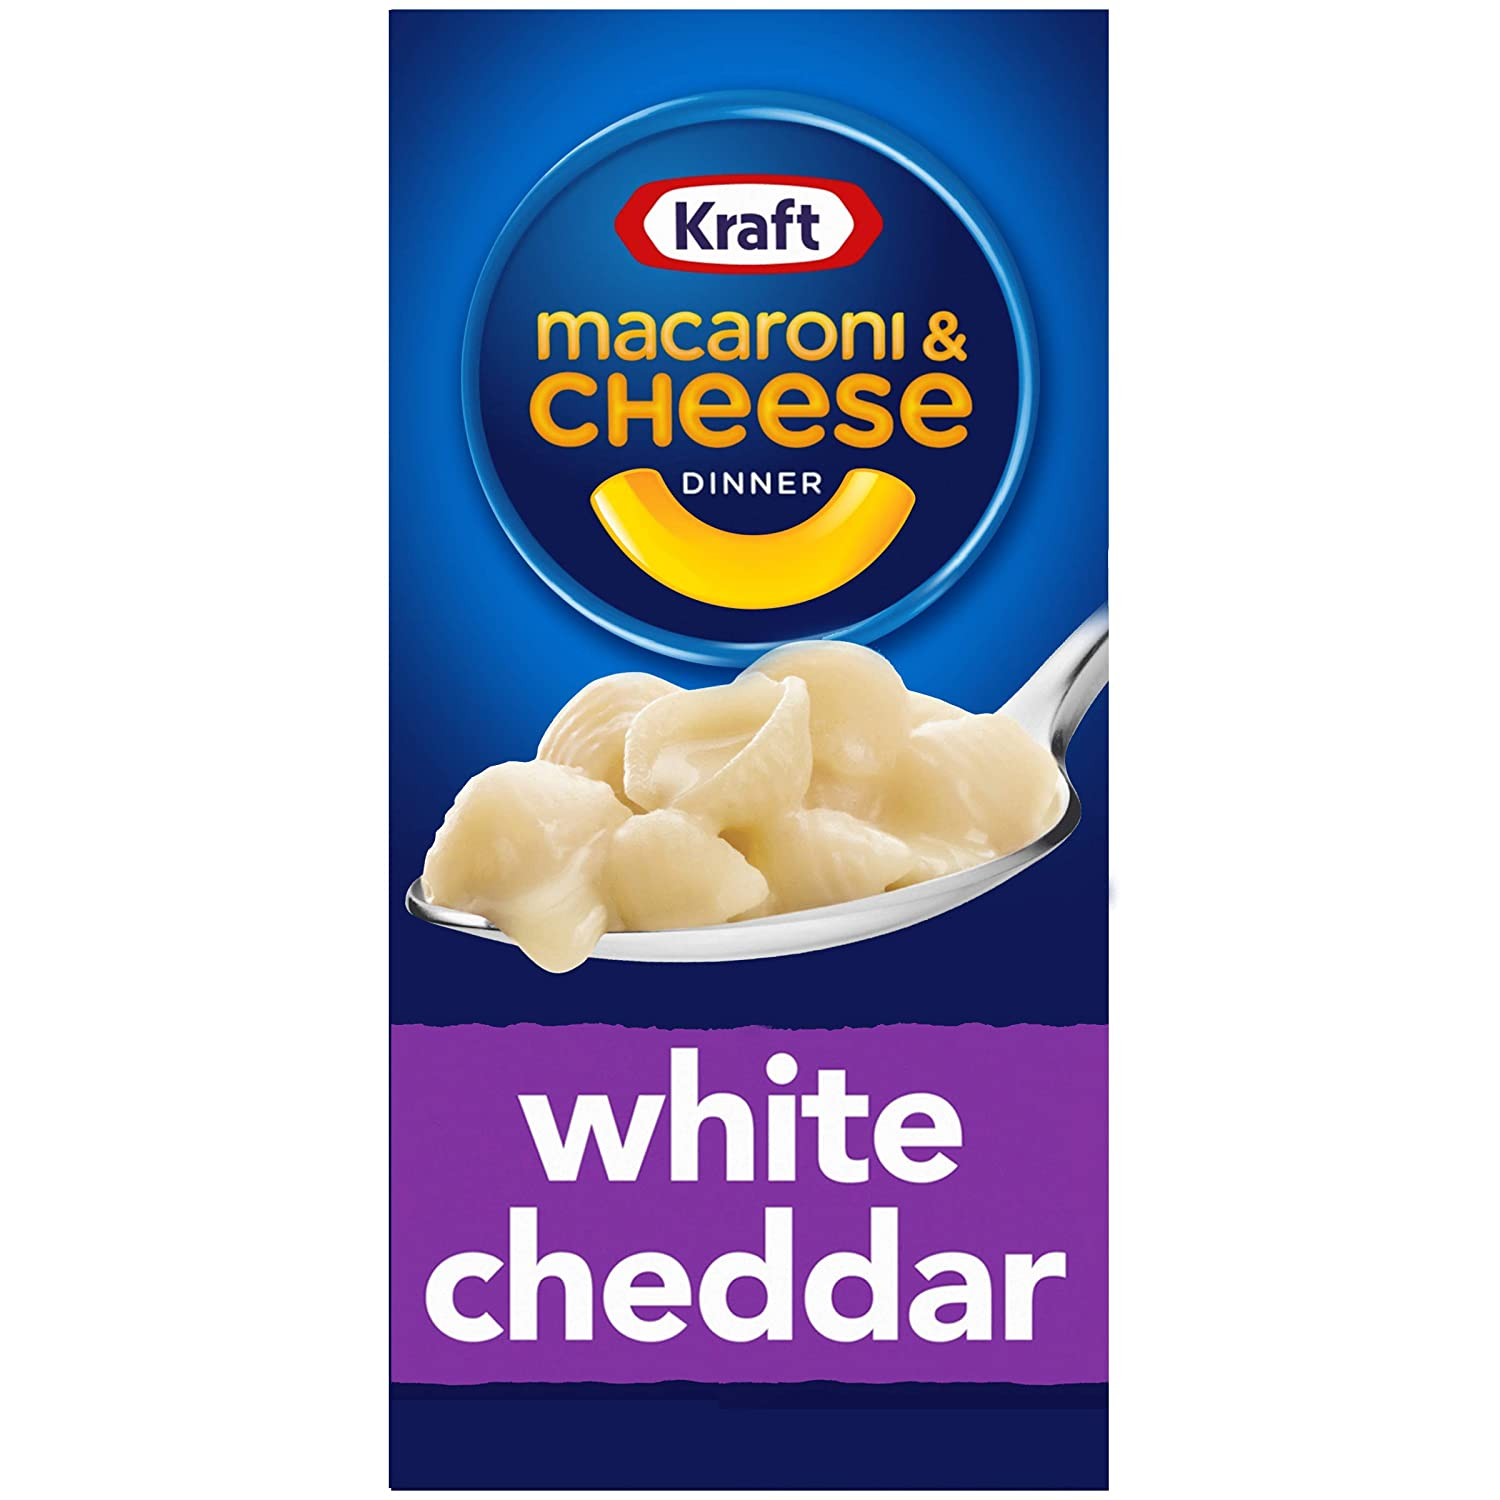 Kraft White Cheddar Macaroni and Cheese Meal (7.3 oz Boxes, Pack of 8)